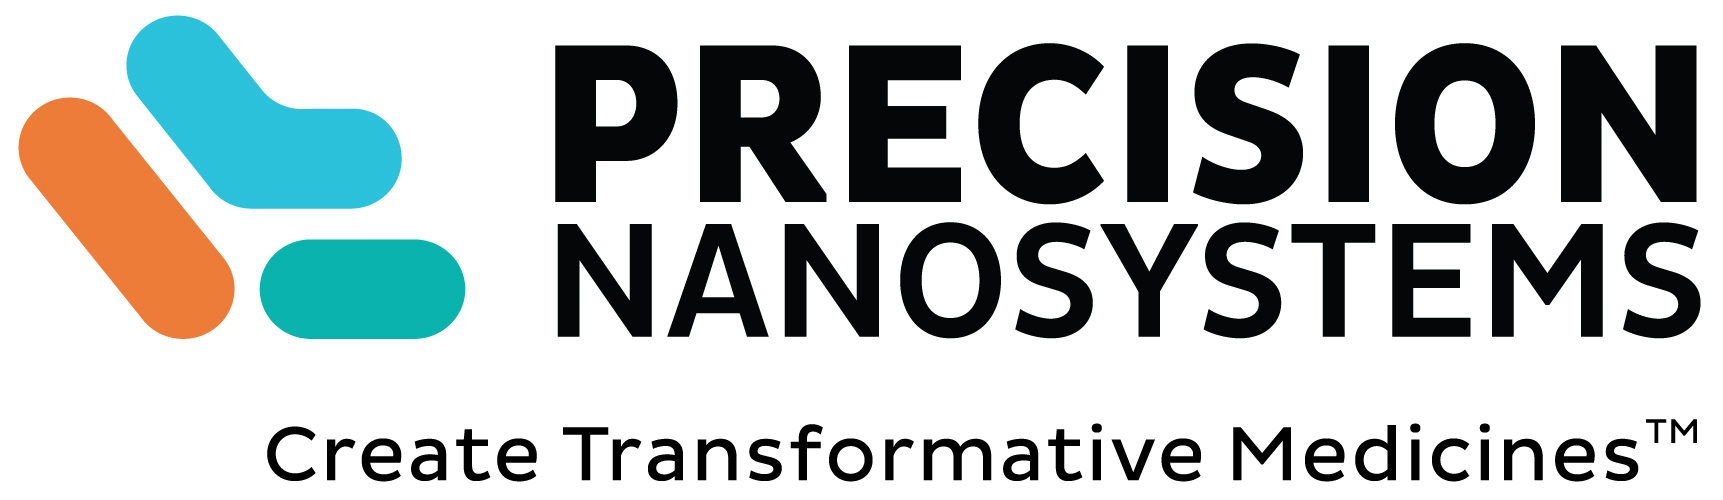 Precision Nanosystems